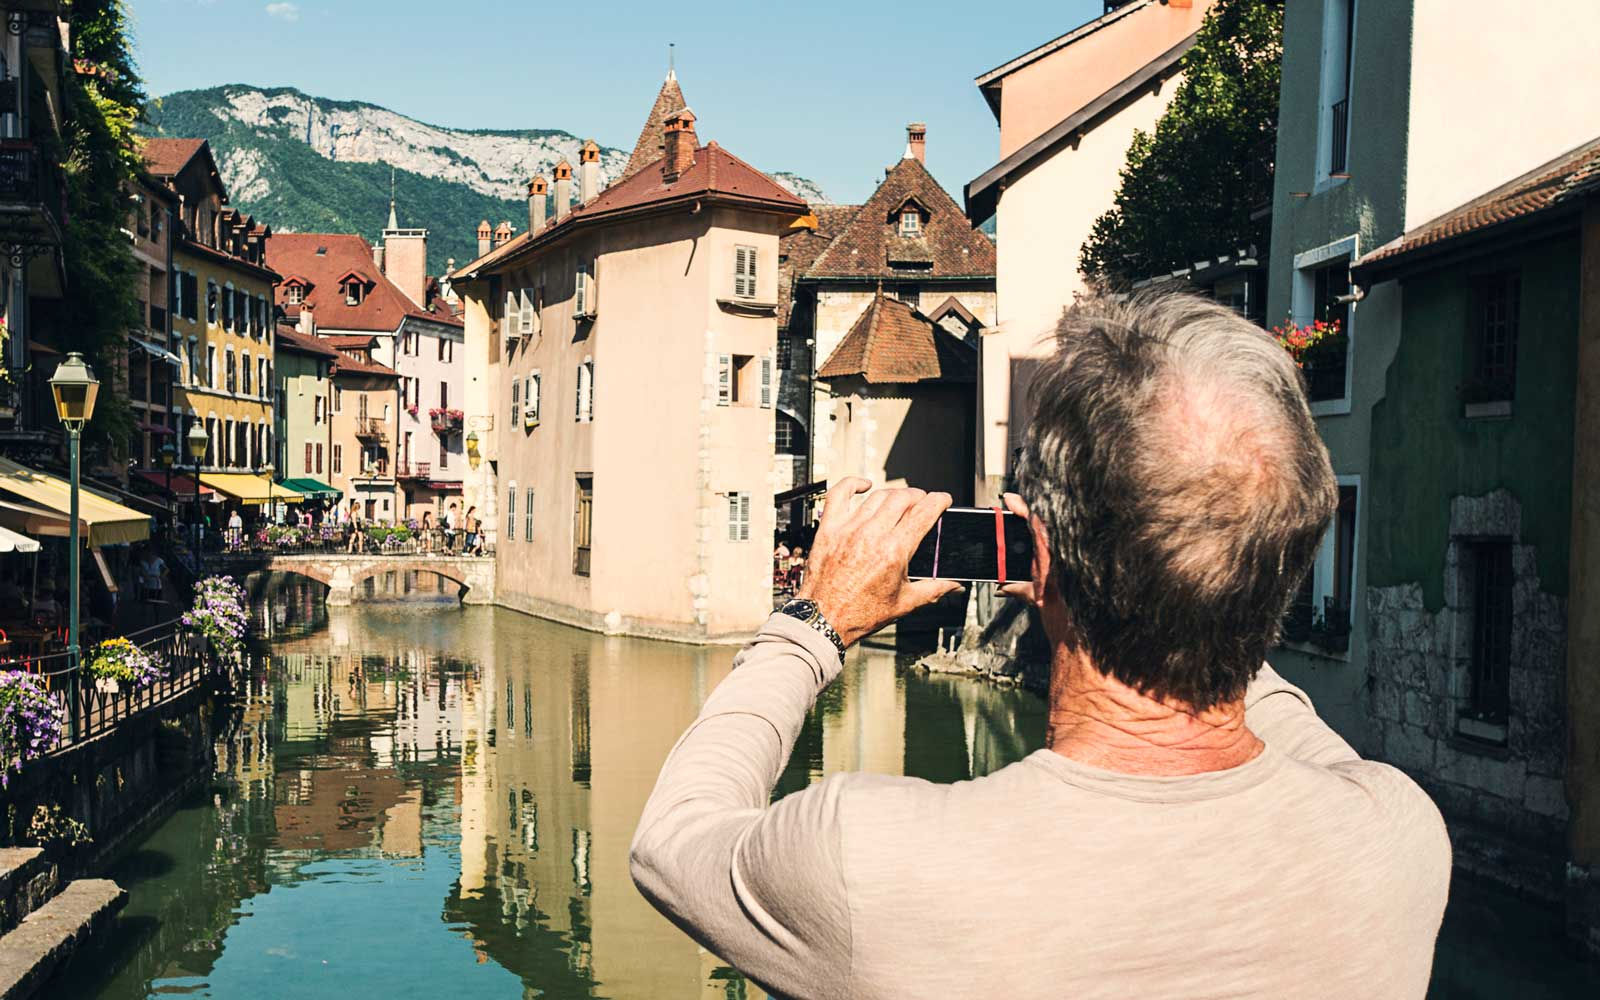 Older man taking scenic image